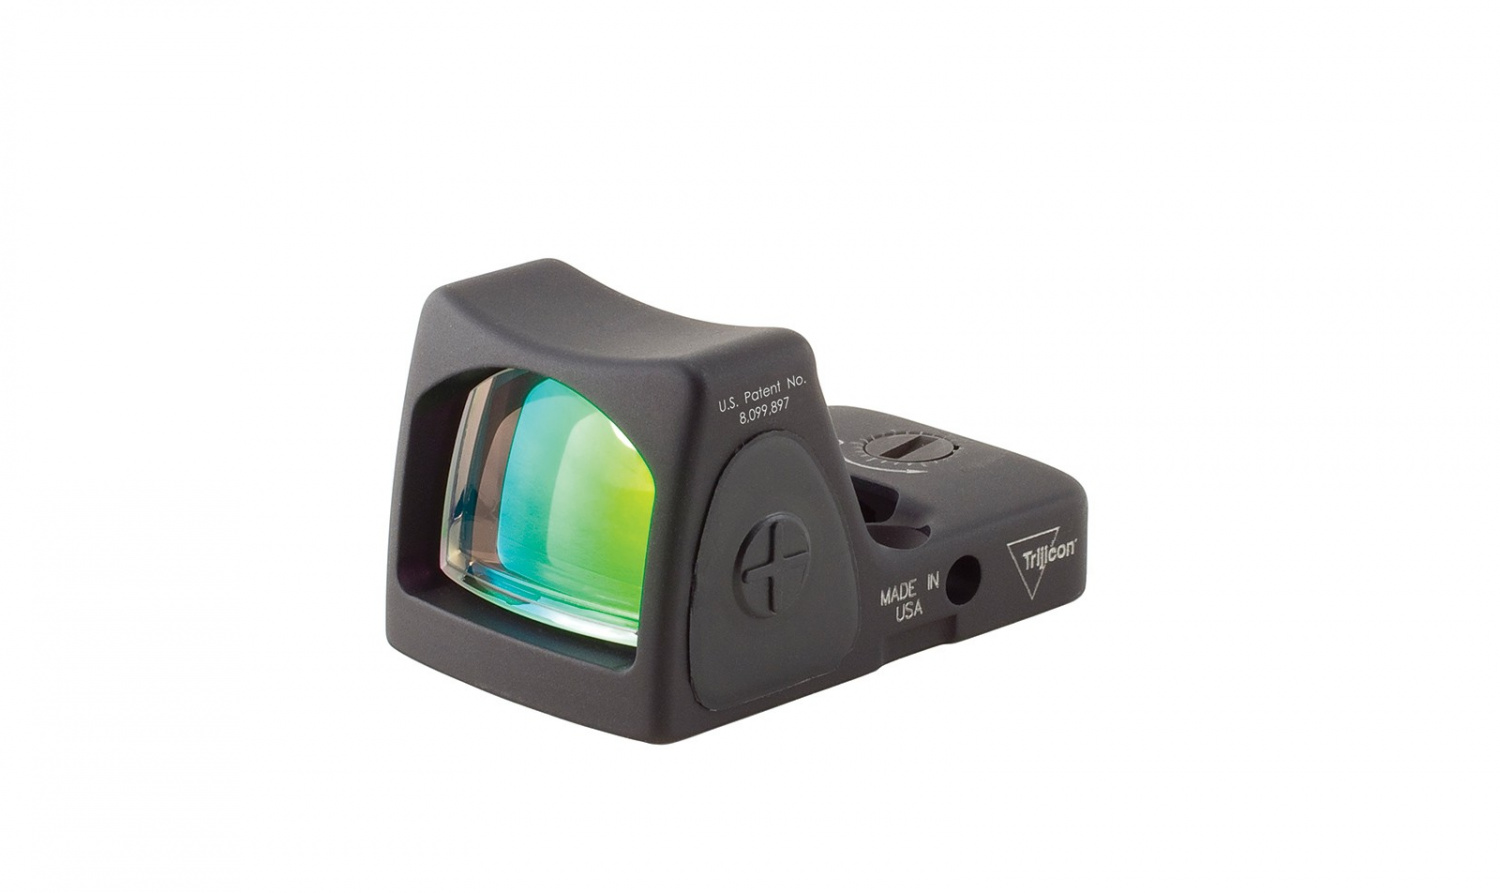 The RMR was one of two Trijicon products specifically named in the lawsuit against Holosun.